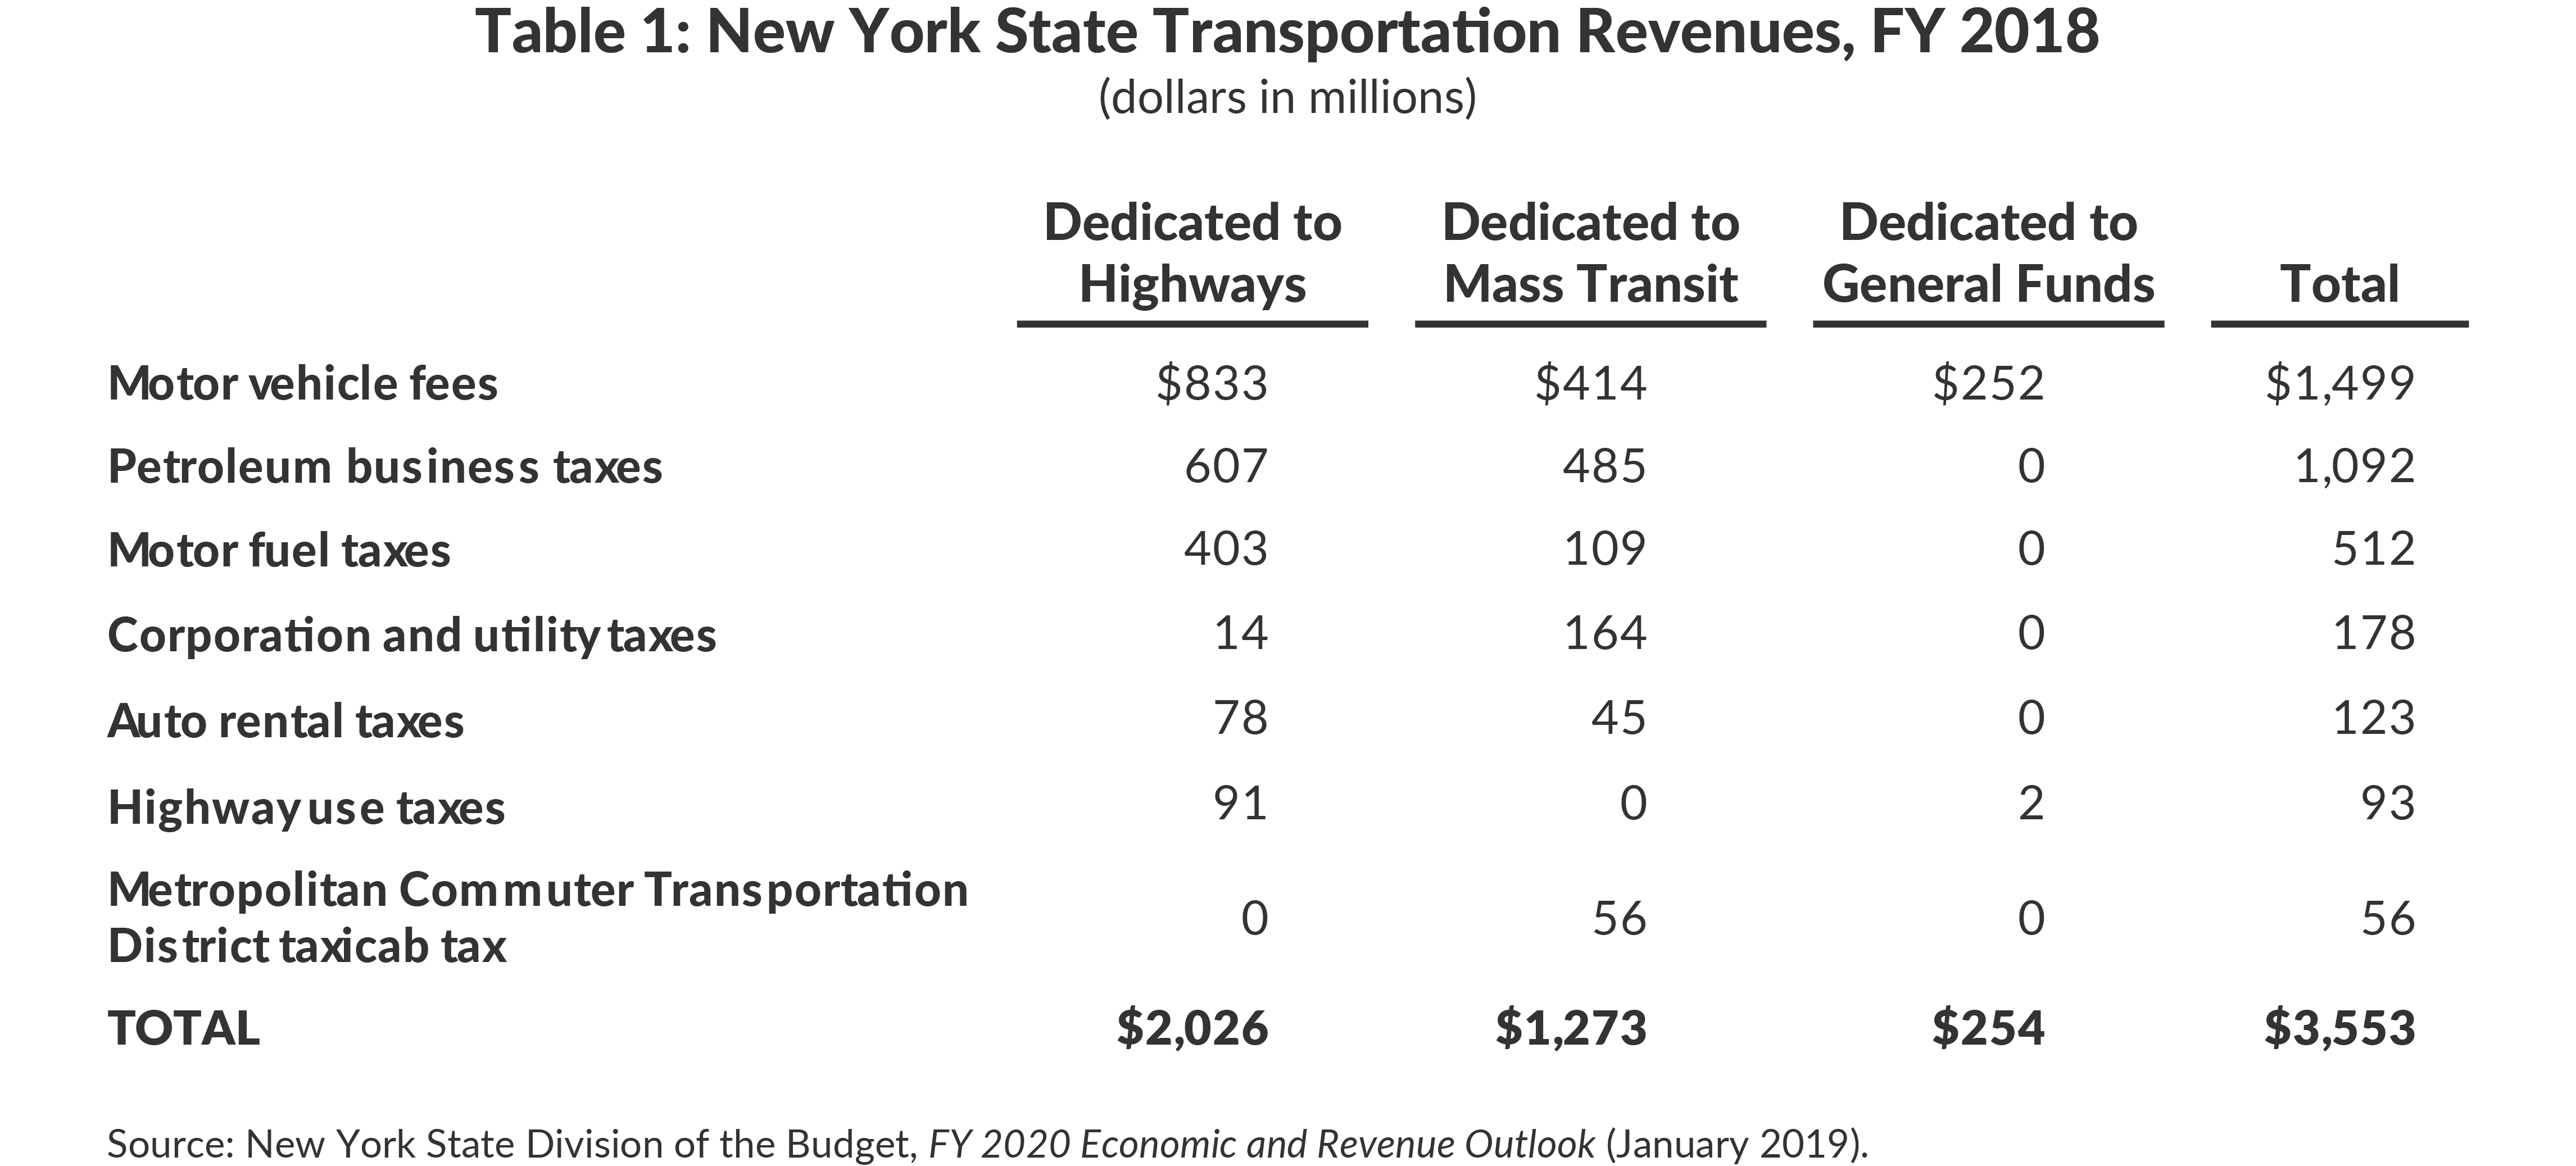 Table 1: New York State Transportation Motor Vehicle User Fee Revenues, FY 2018